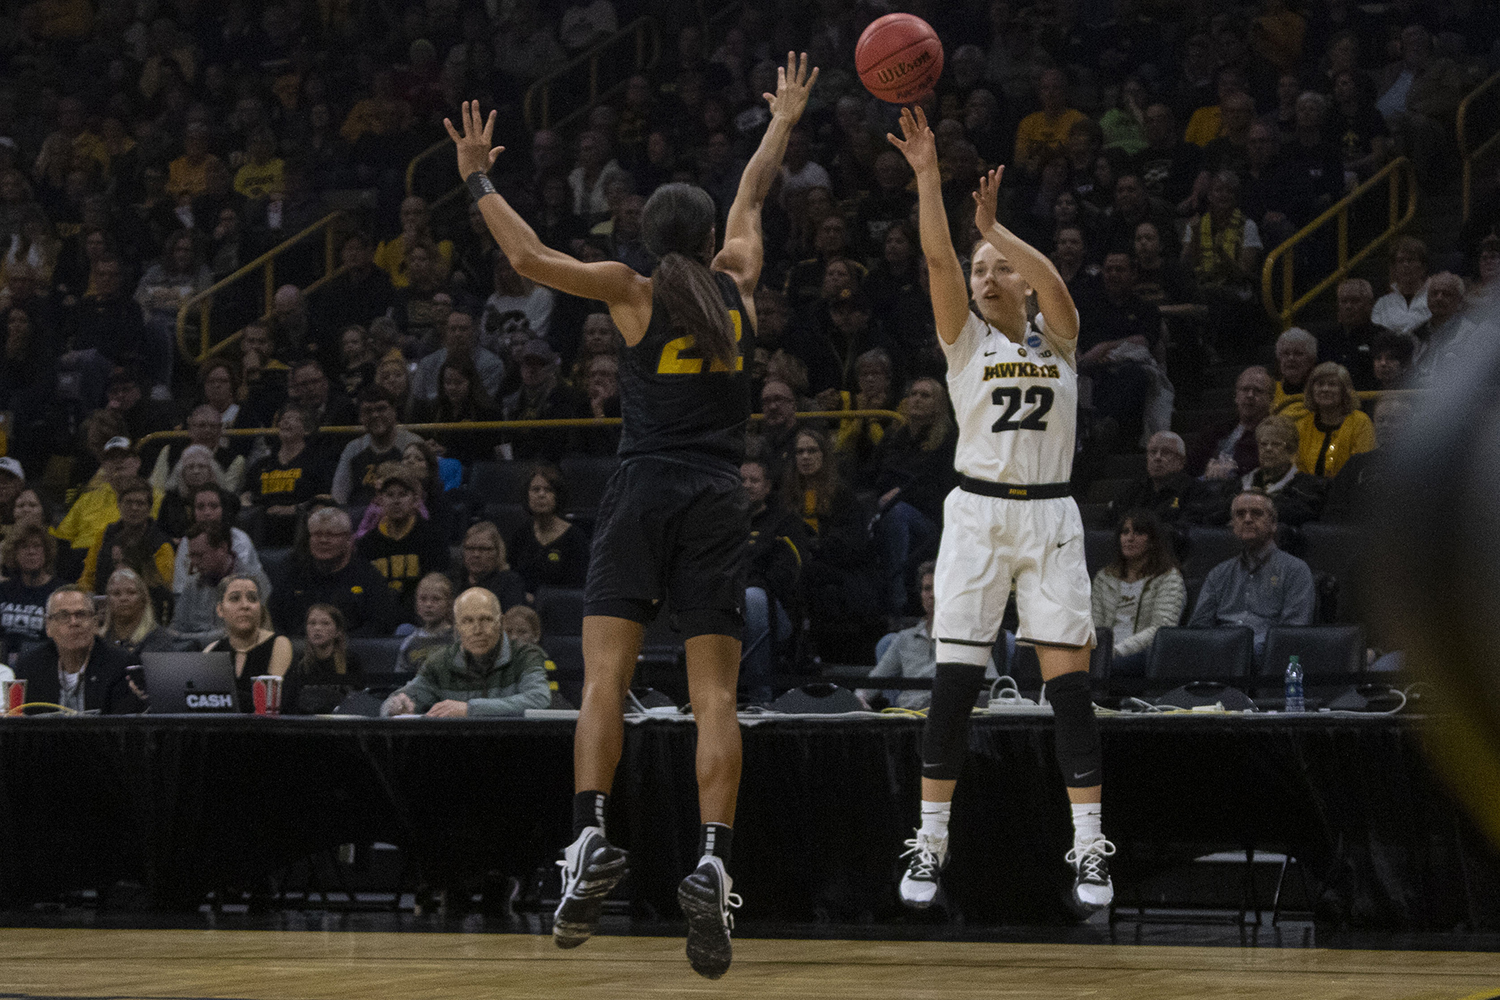 Iowa+guard+Kathleen+Doyle+attempts+a+shot+during+the+Iowa%2FMizzou+NCAA+Tournament+second+round+women%27s+basketball+game+in+Carver-Hawkeye+Arena++on+Sunday%2C+March+24%2C+2019.+The+Hawkeyes+defeated+the+Tigers%2C+68-52.+